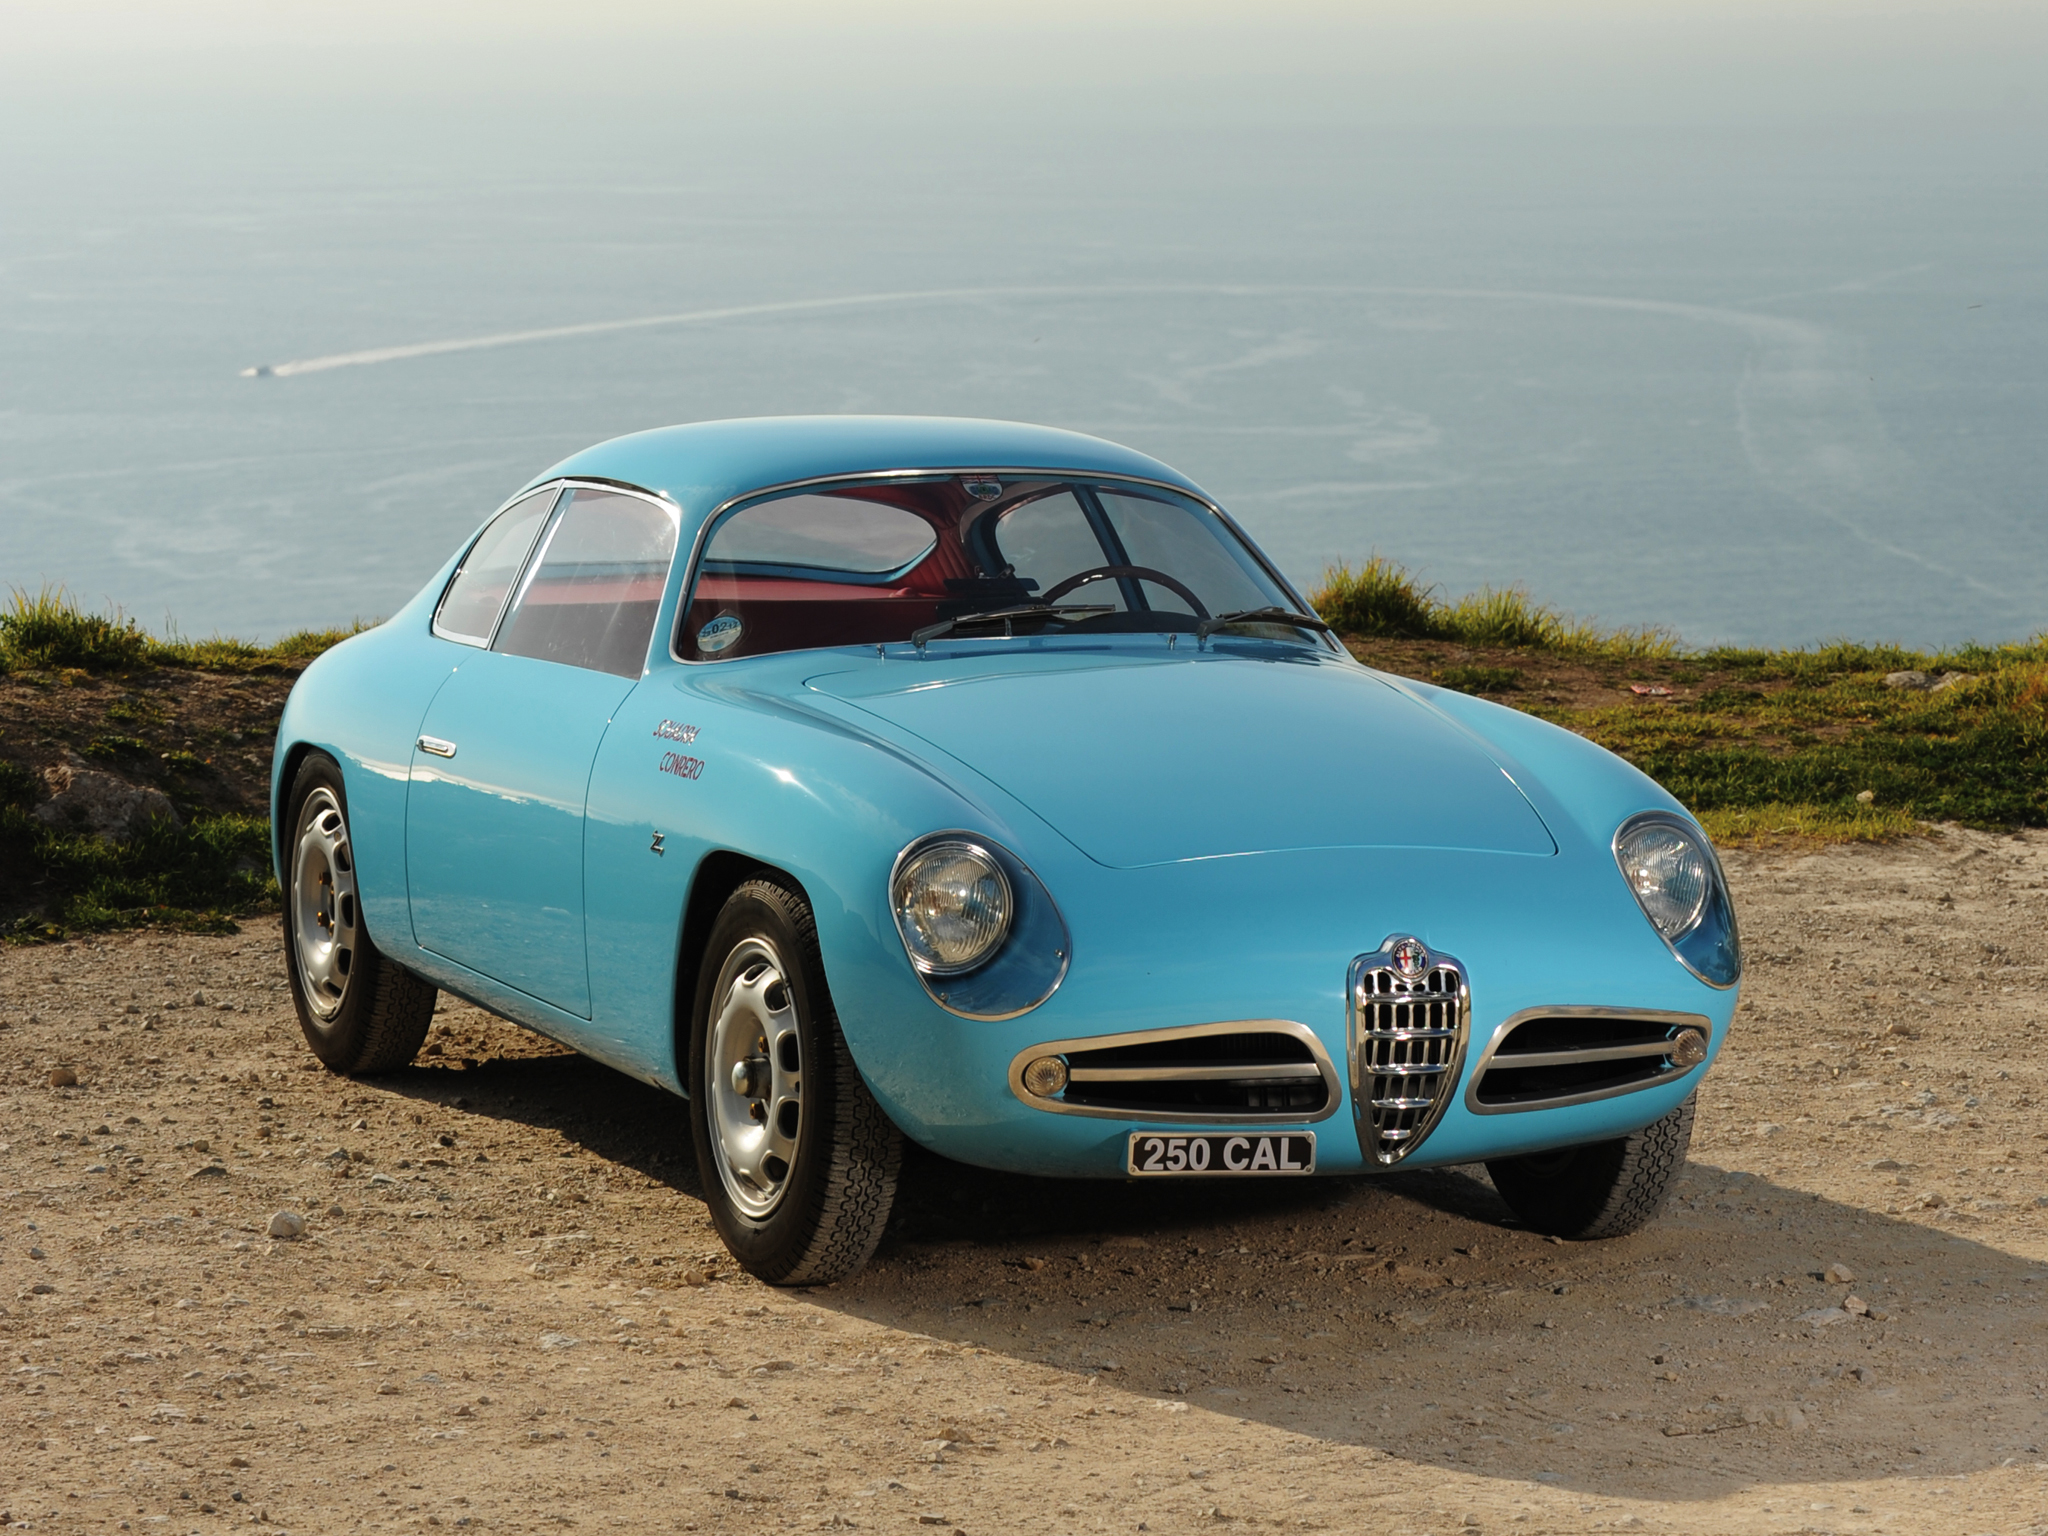 Alfa romeo svz photo - 1